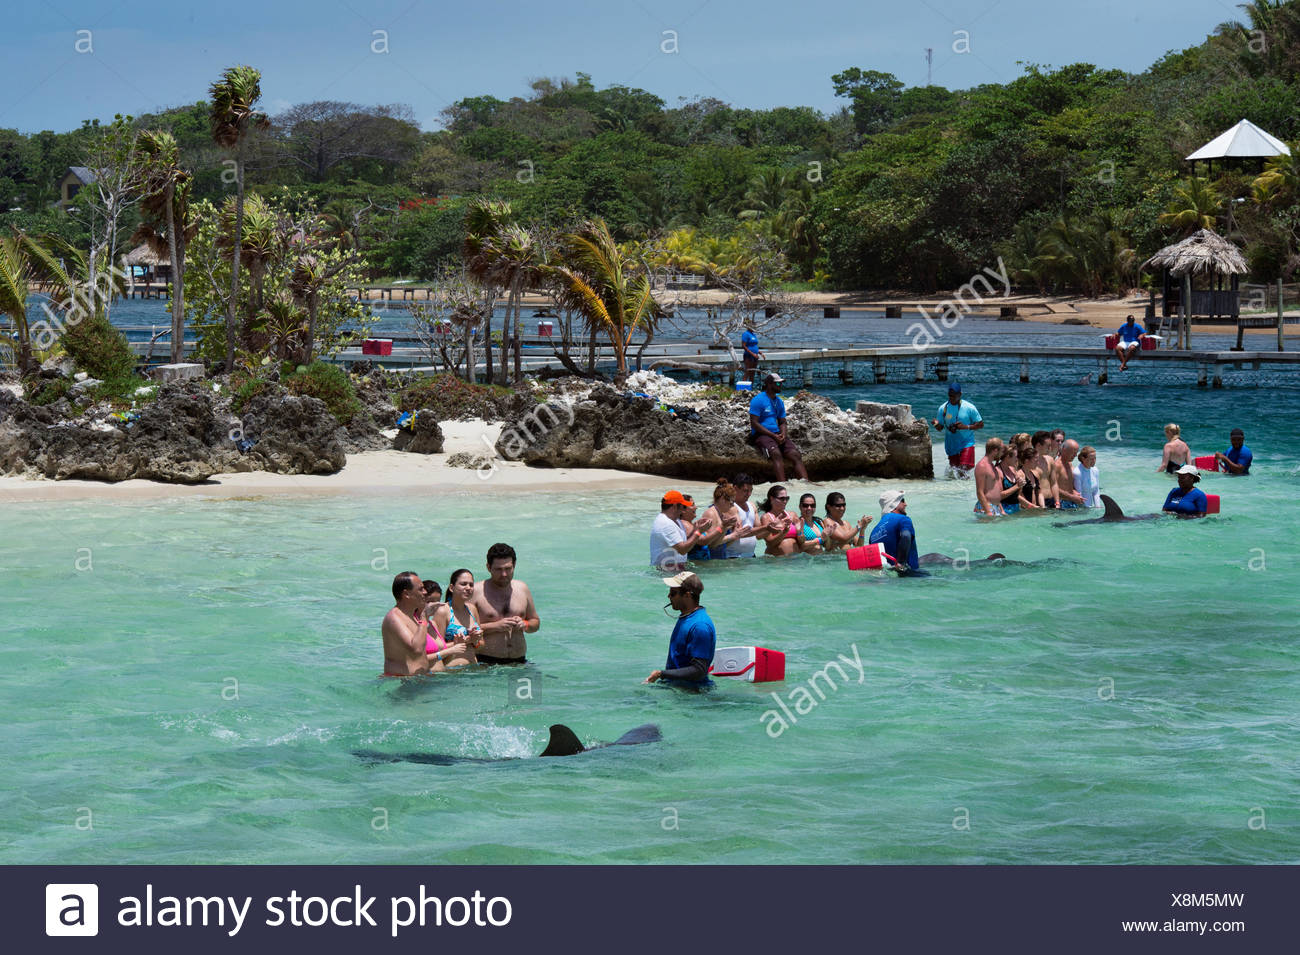 Tourists interact with a bottlenose dolphin at the Roatan Institute for Marine Science at Anthony's Key Resort in Honduras. - Stock Image